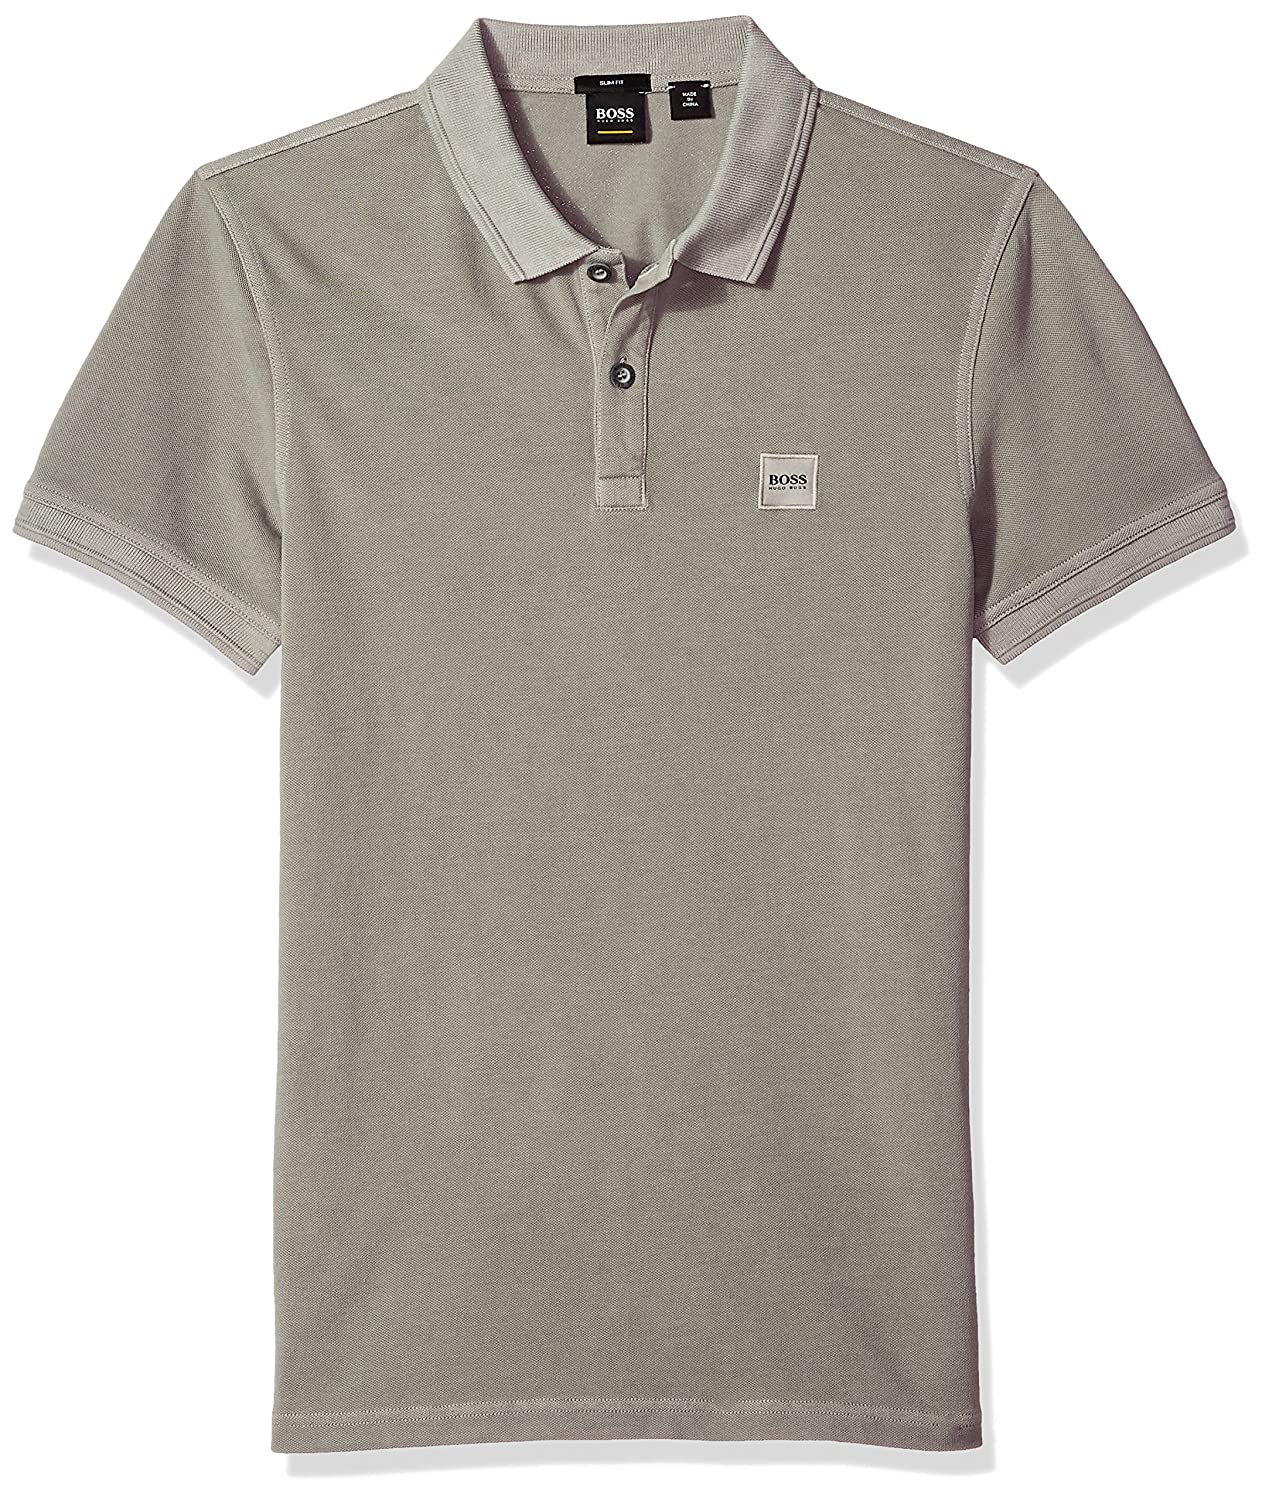 5de09fea Fake Hugo Boss Polo Shirts Sale – EDGE Engineering and Consulting ...